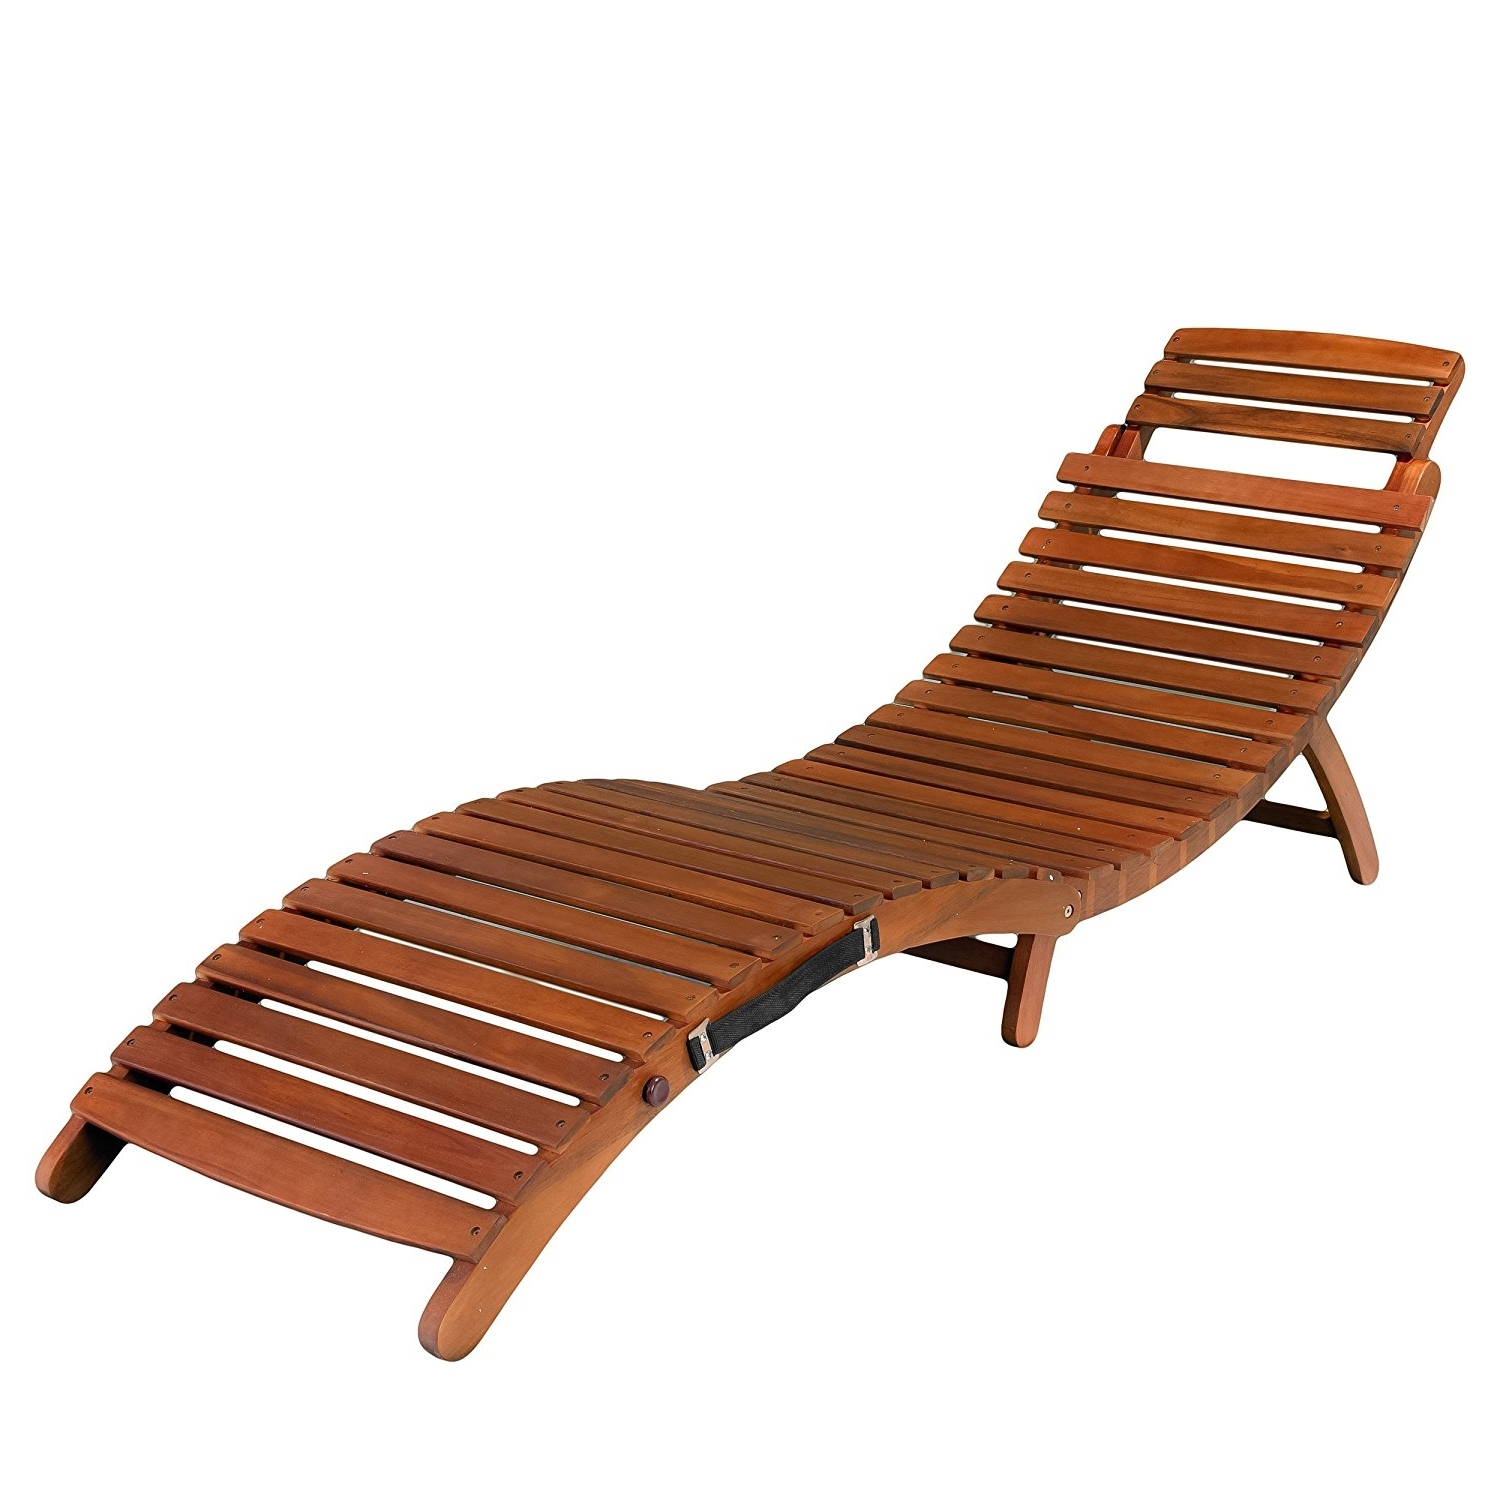 Latest Cheap Folding Chaise Lounge Chairs For Outdoor Within Amazon: Best Selling Del Rio Wood Outdoor Chaise Lounge (View 15 of 15)